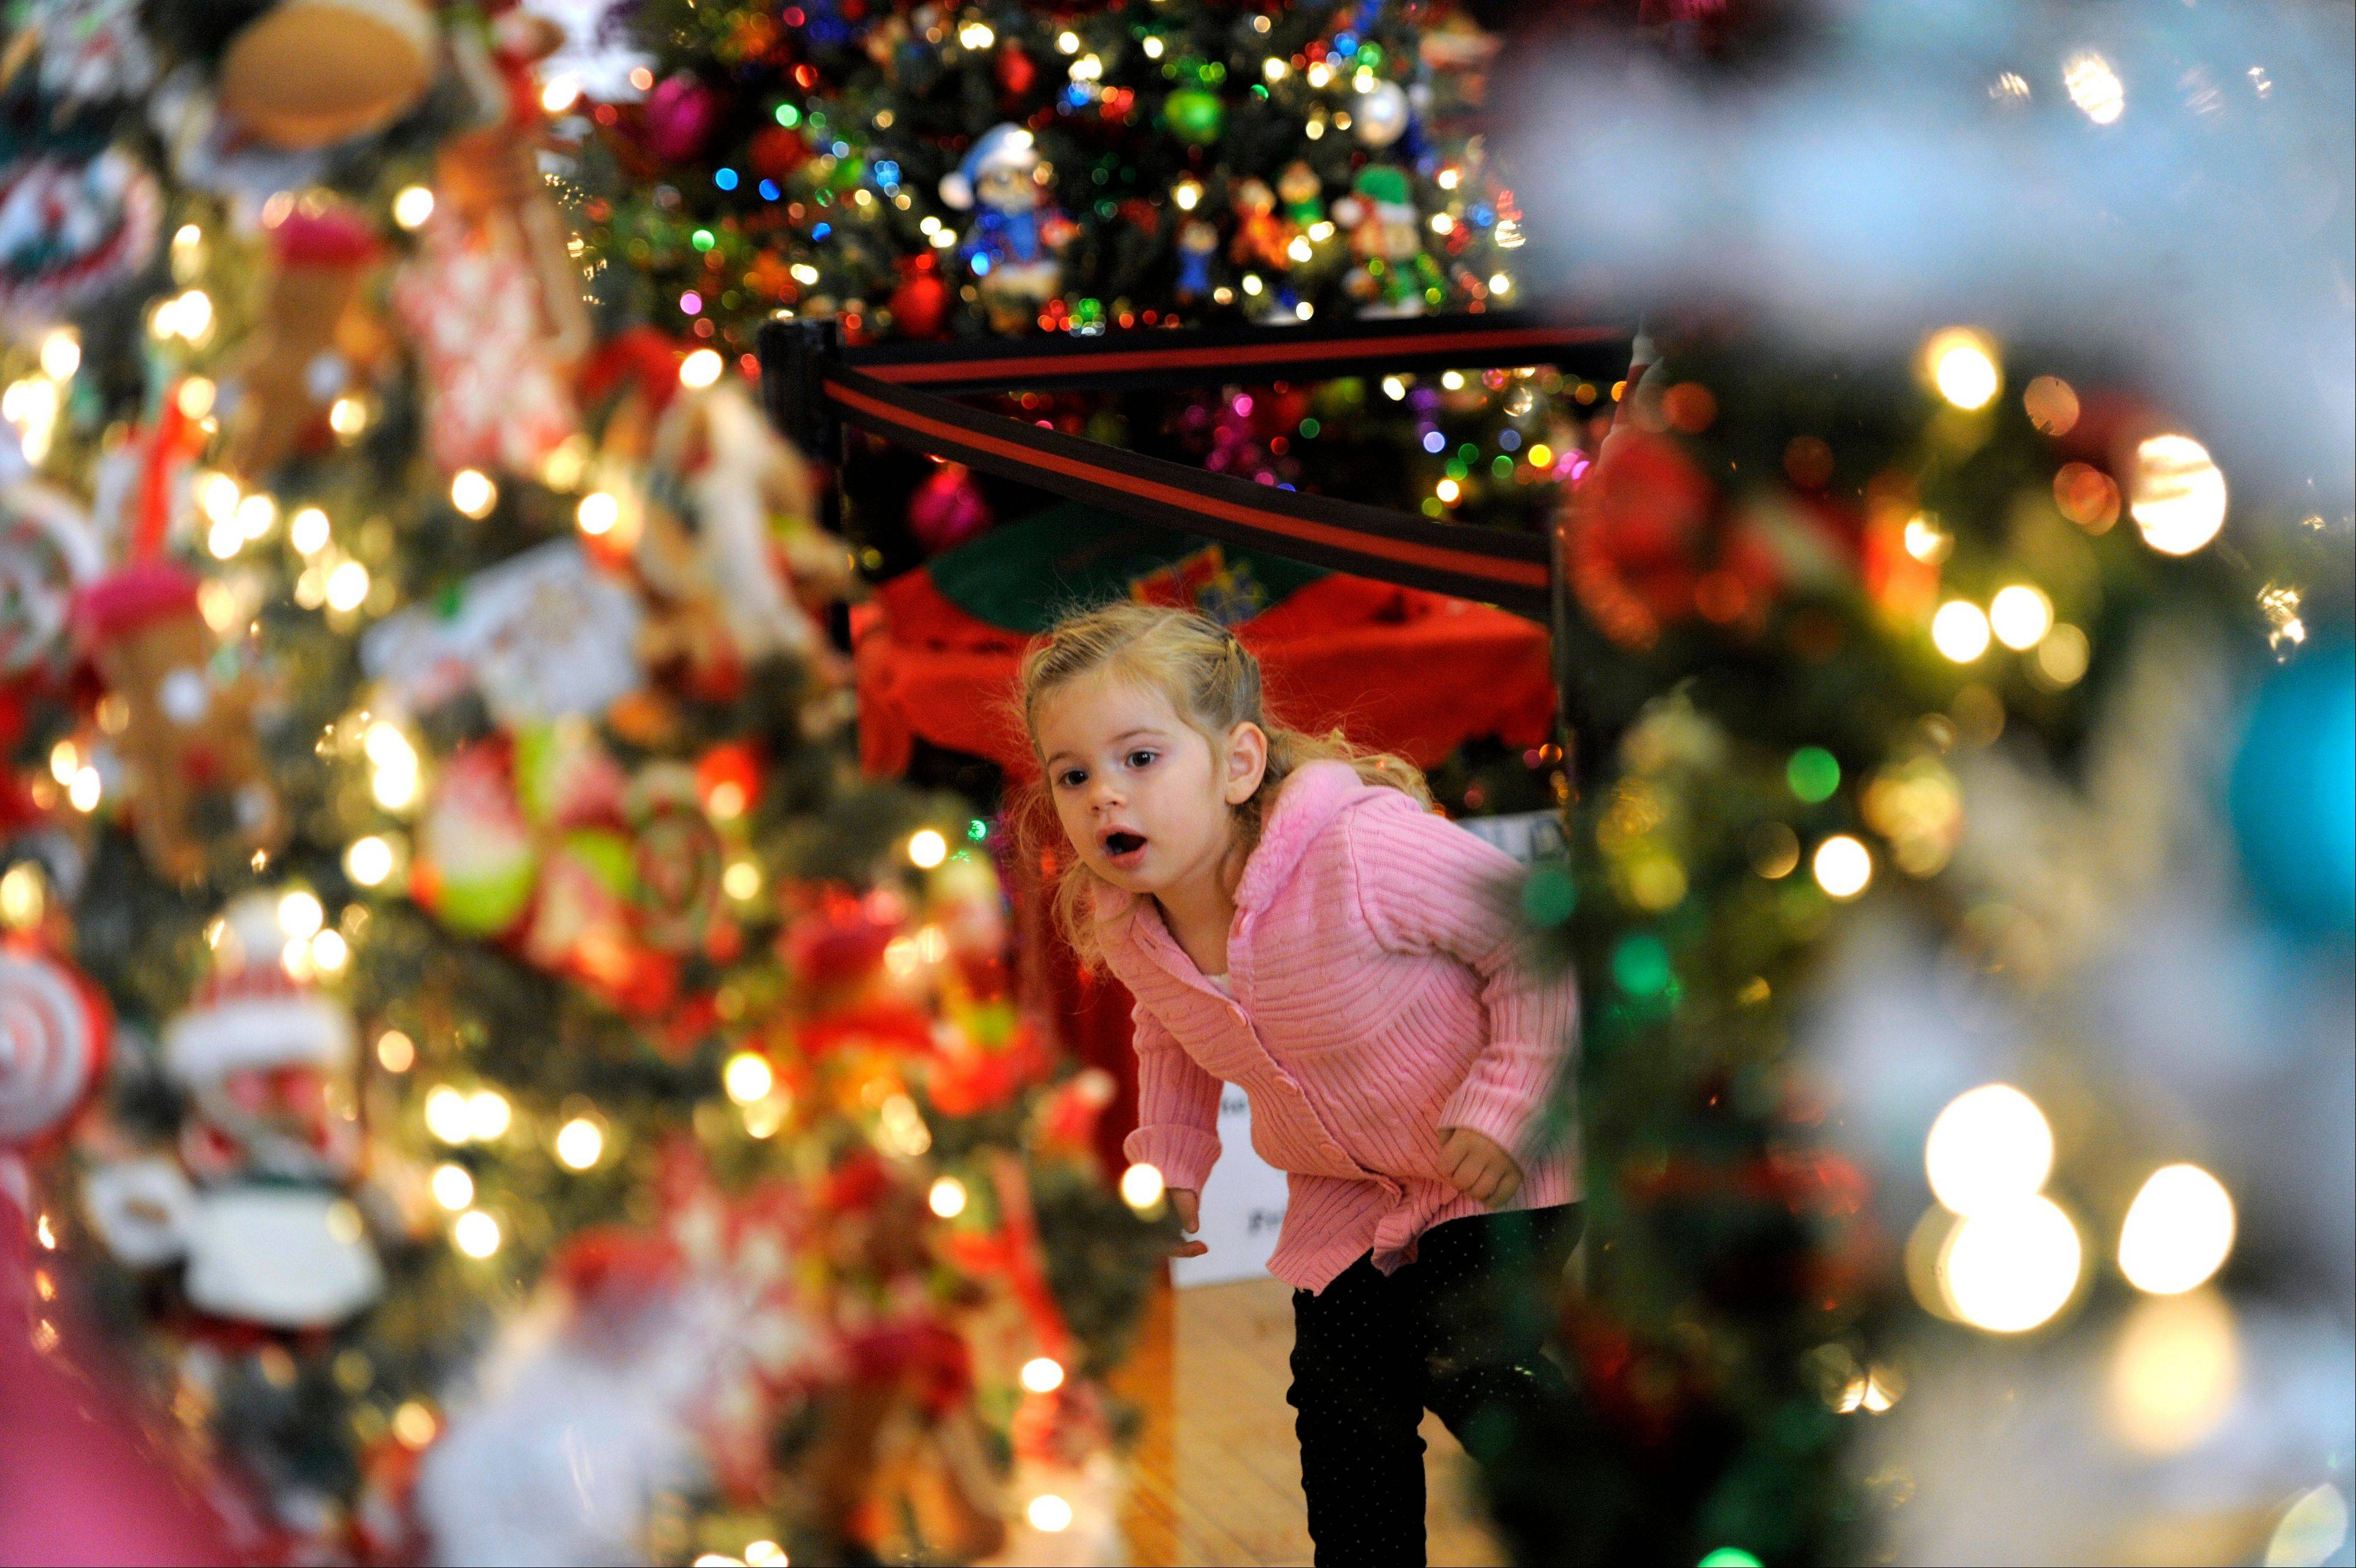 Carly Serepetti, checks out the decorated Christmas trees on display in Dearborn, Mich. With a little planning, a little help and a lot of resolve, holiday entertaining doesn't have to mean you're too stressed out to enjoy your own party.